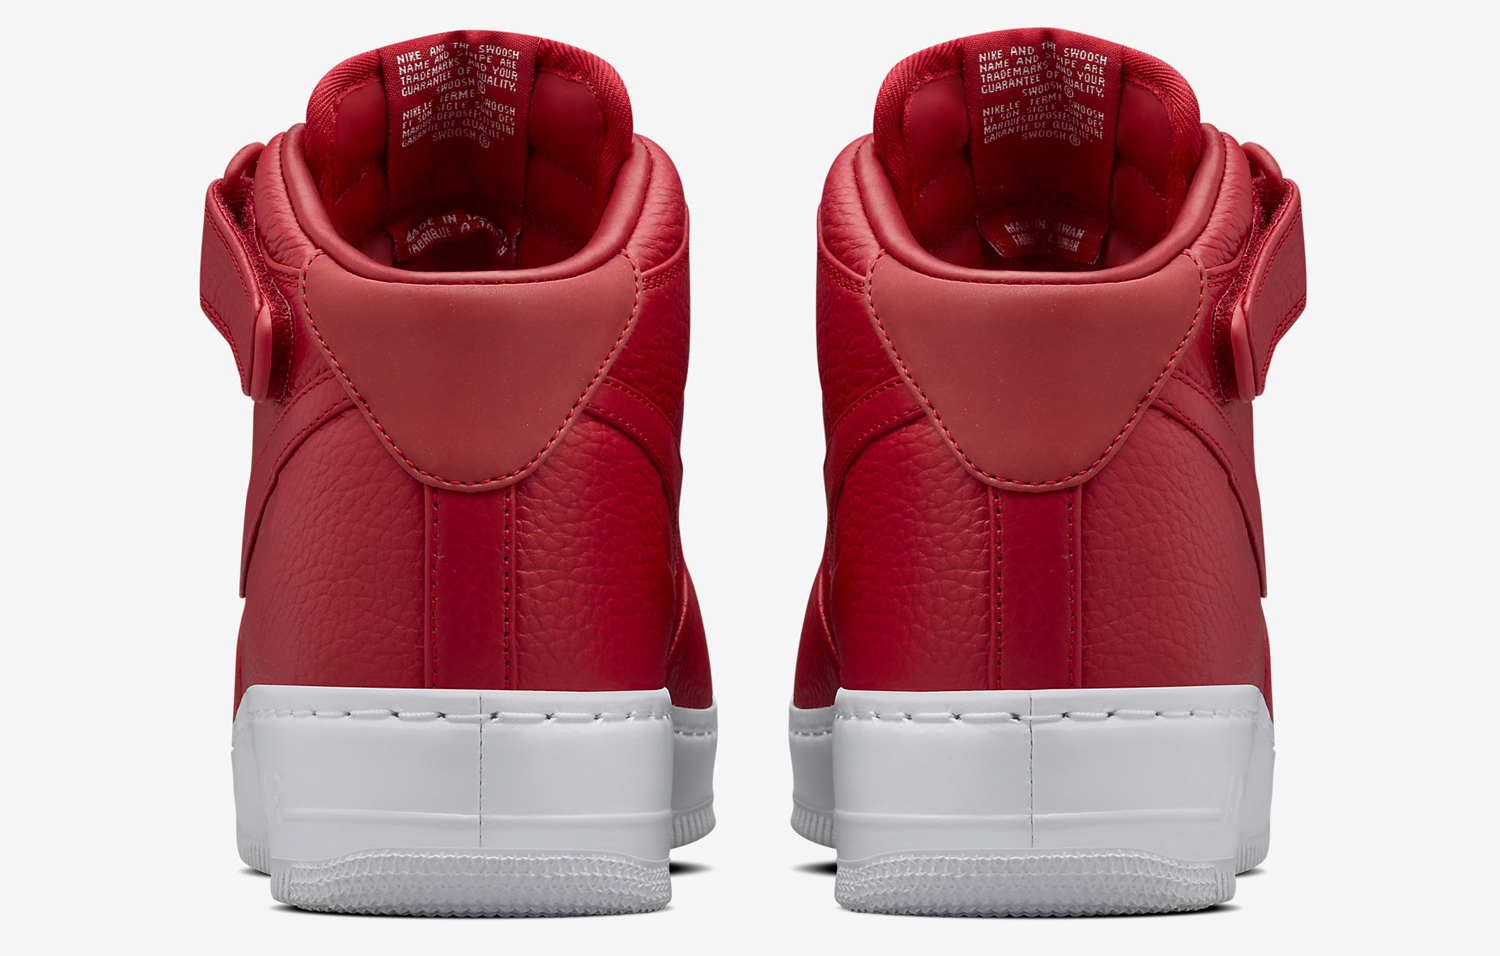 c8daf18f1eab 50%OFF NikeLab Air Force 1 Mid Collection Release Date - molndalsrev.se